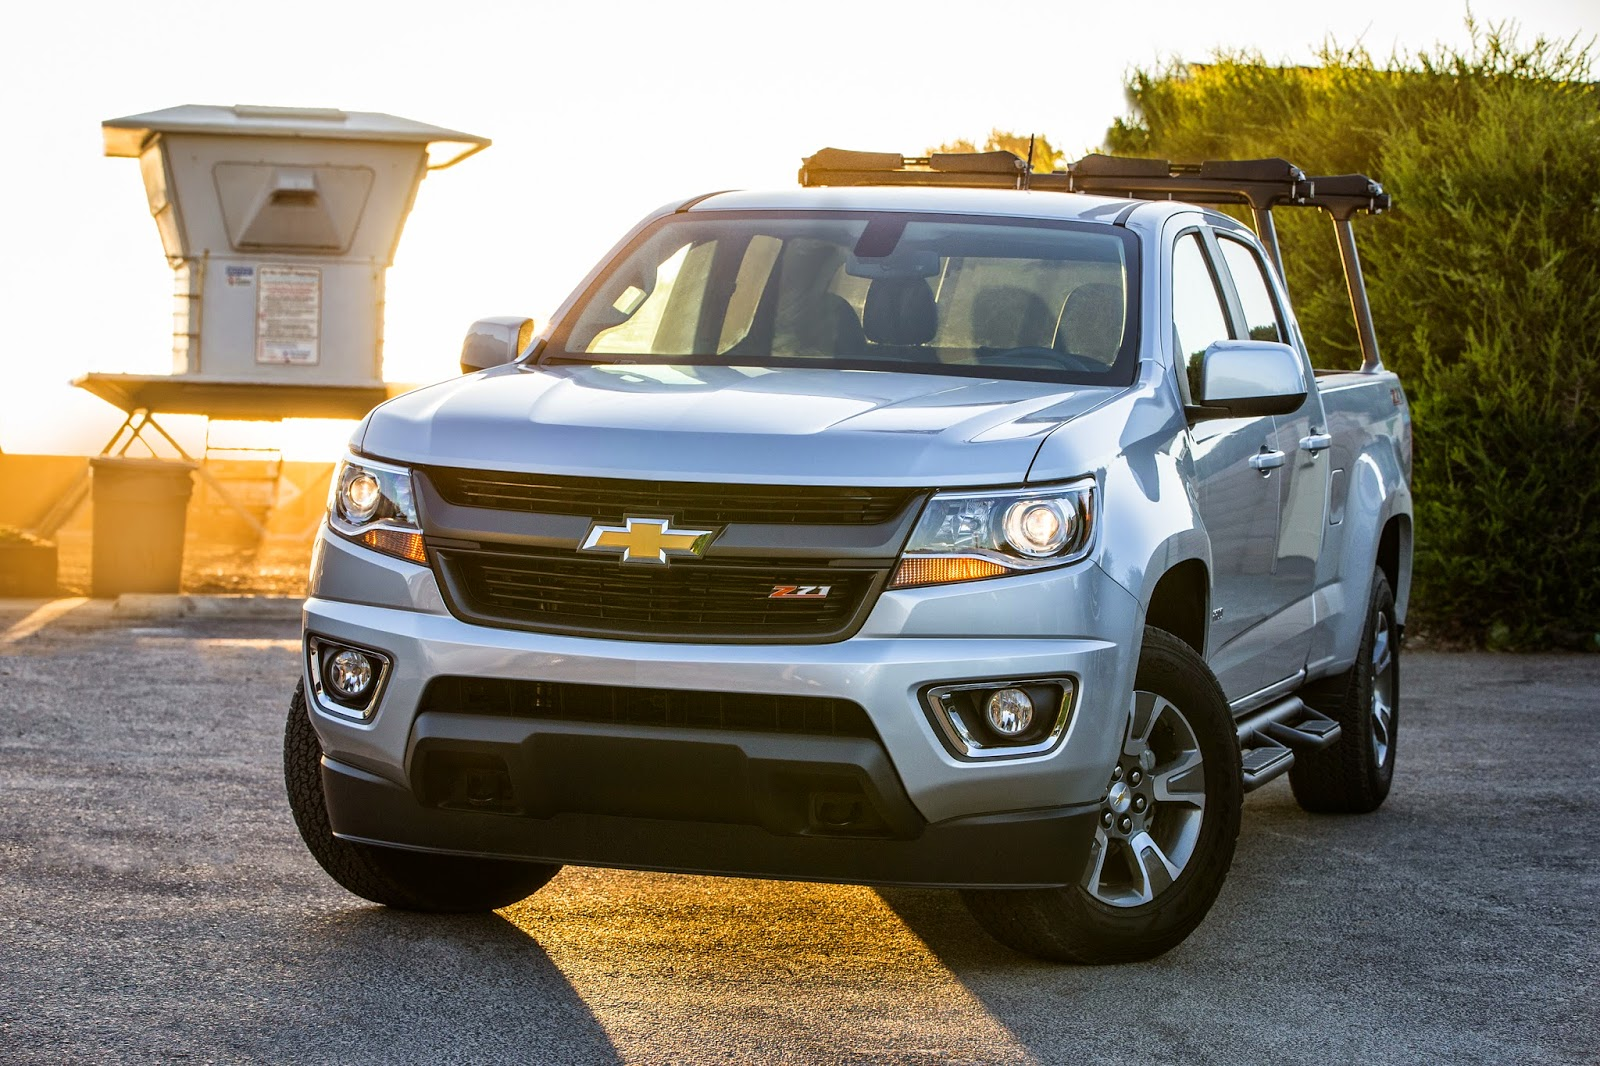 2015 MOTOR TREND Truck of the Year: Chevrolet Colorado